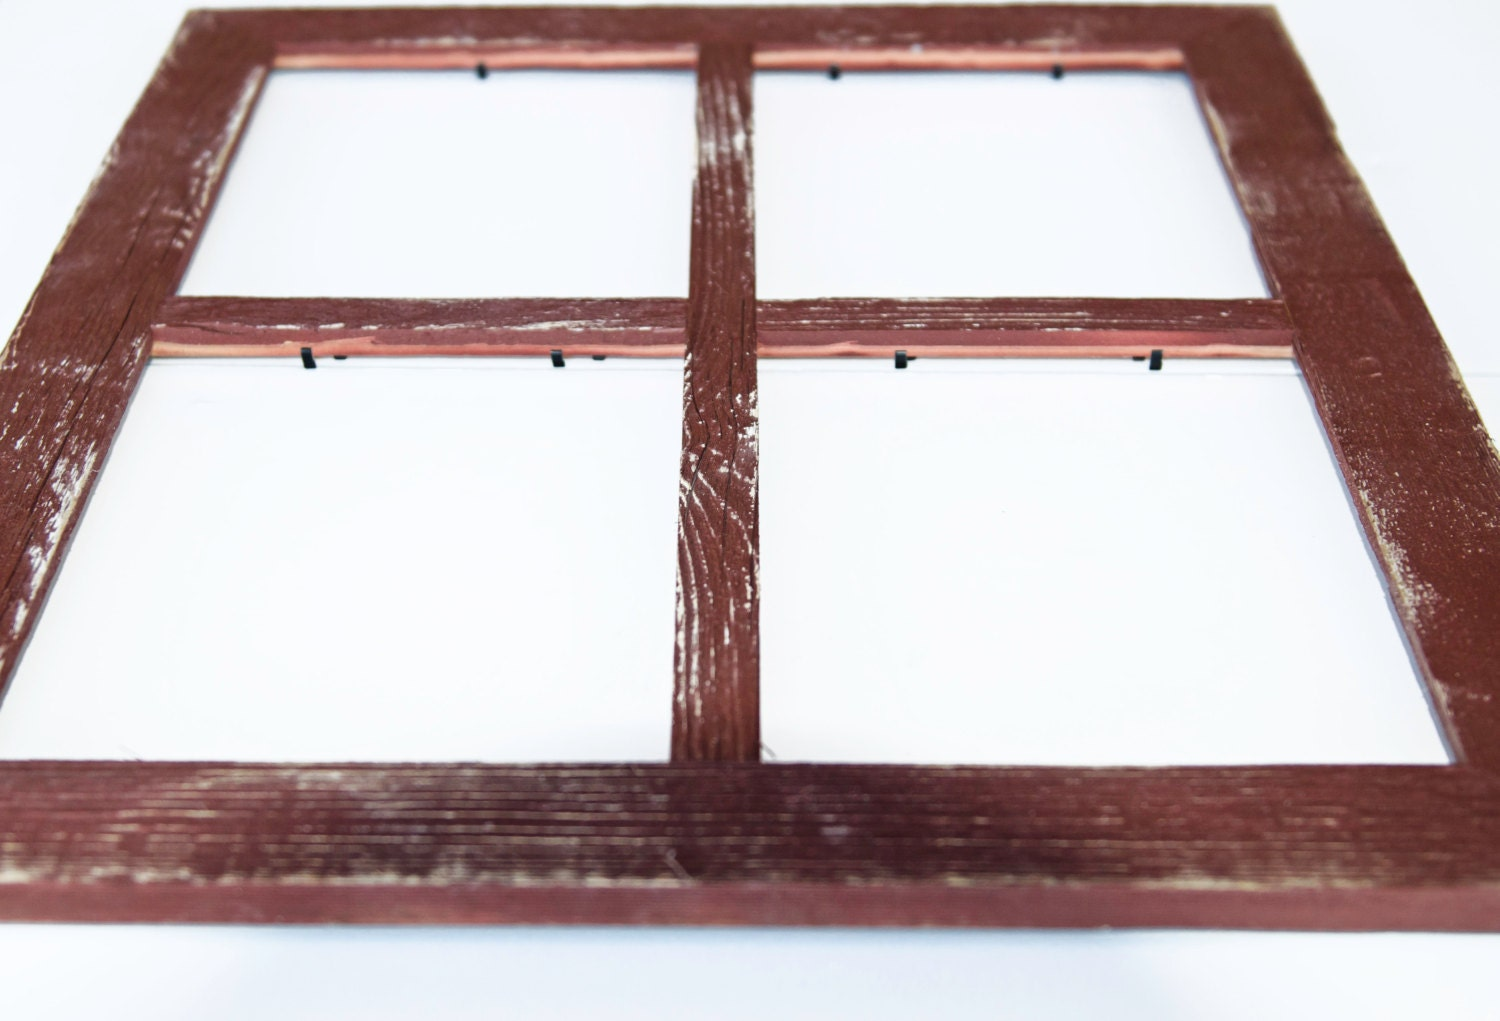 2 4 hole 8x10 barn window collage picture frame barn red rustic wedding - Window Collage Frame